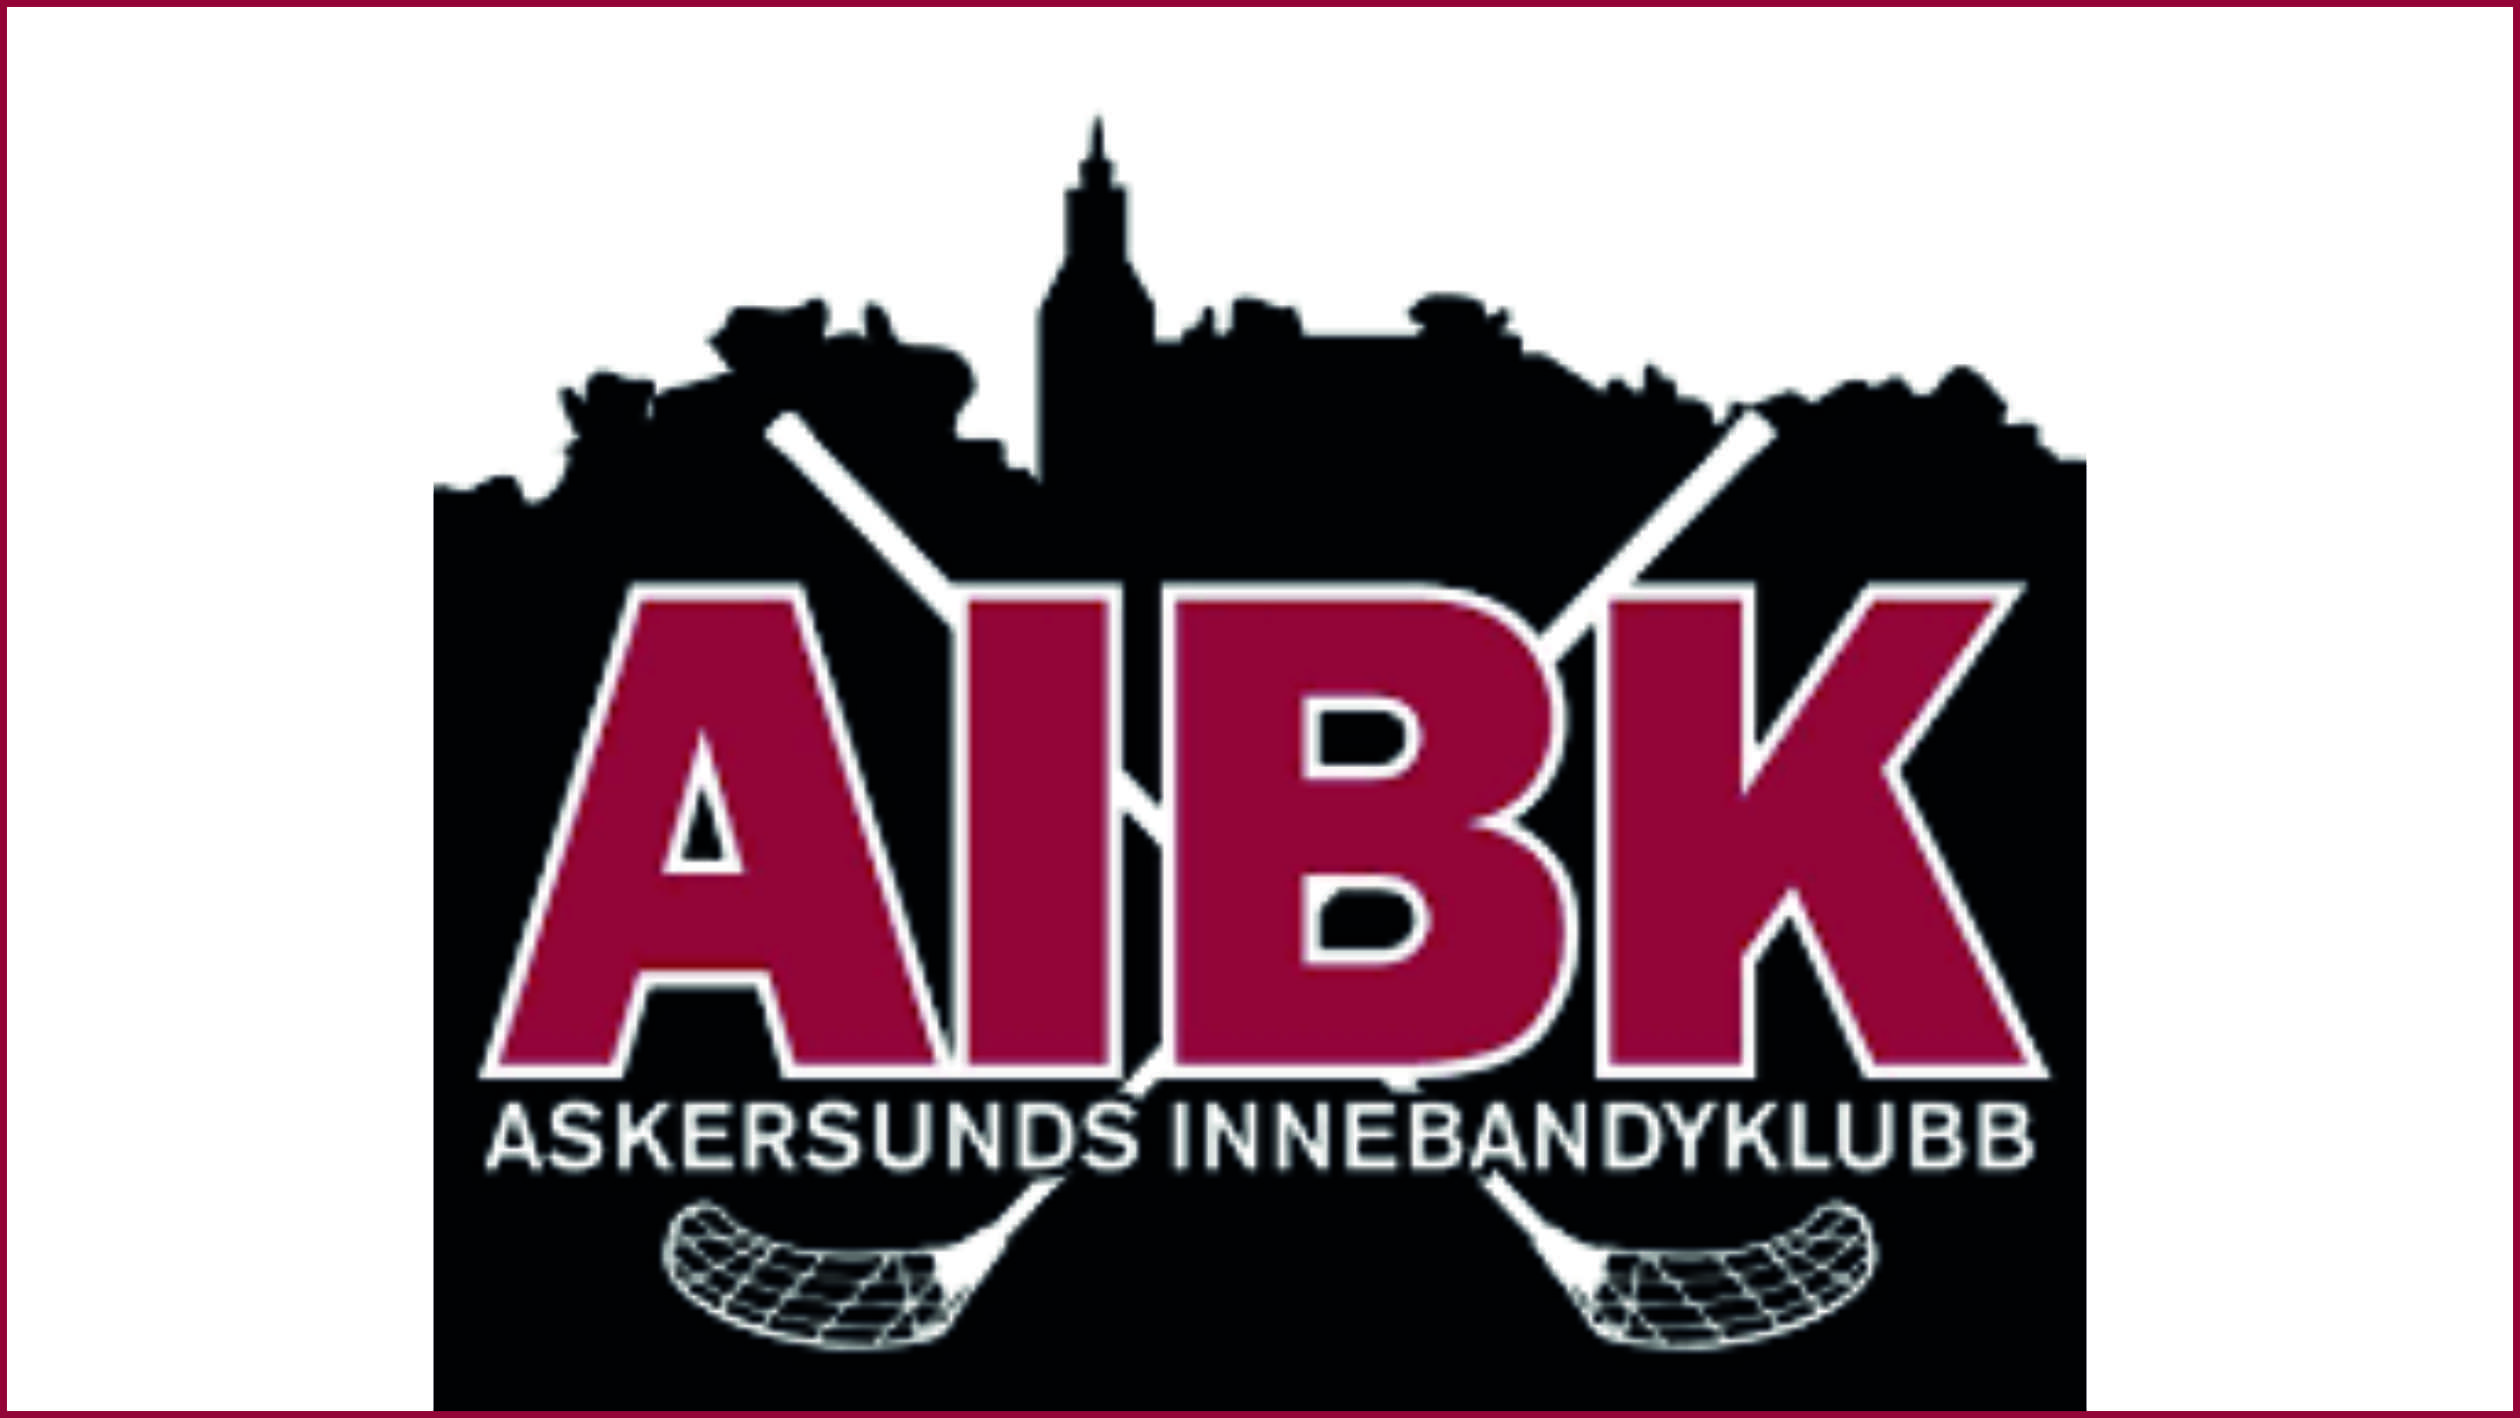 Logotyp - Askersunds IBK